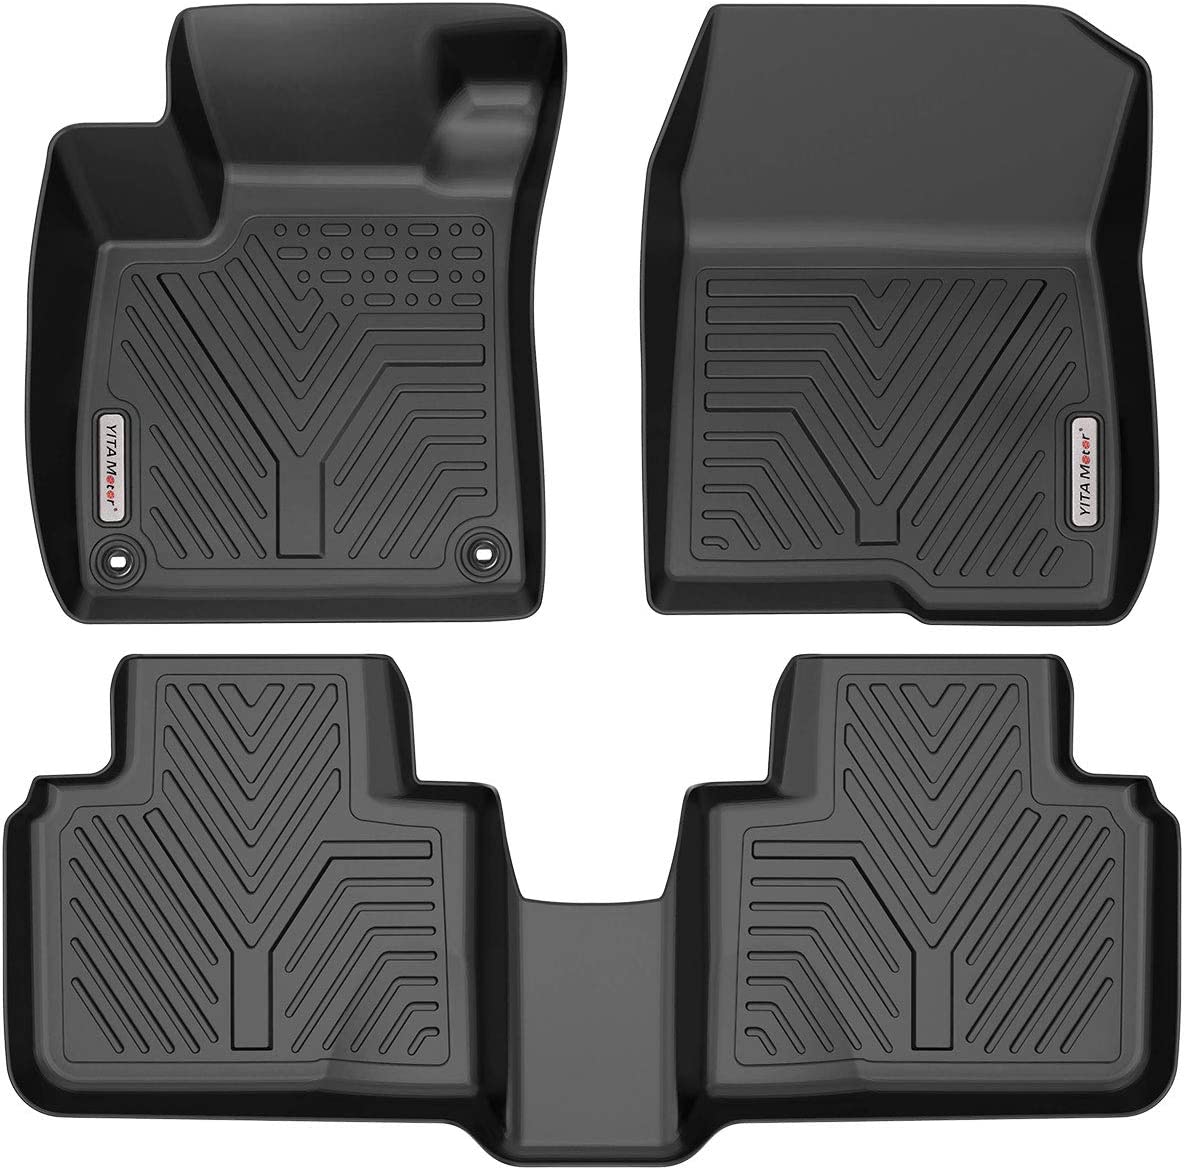 YITAMOTOR Floor Mats Compatible with Honda Accord Custom Fit Floor Liners for 2018-2020 Honda Accord 1st /& 2nd Row All Weather Protection